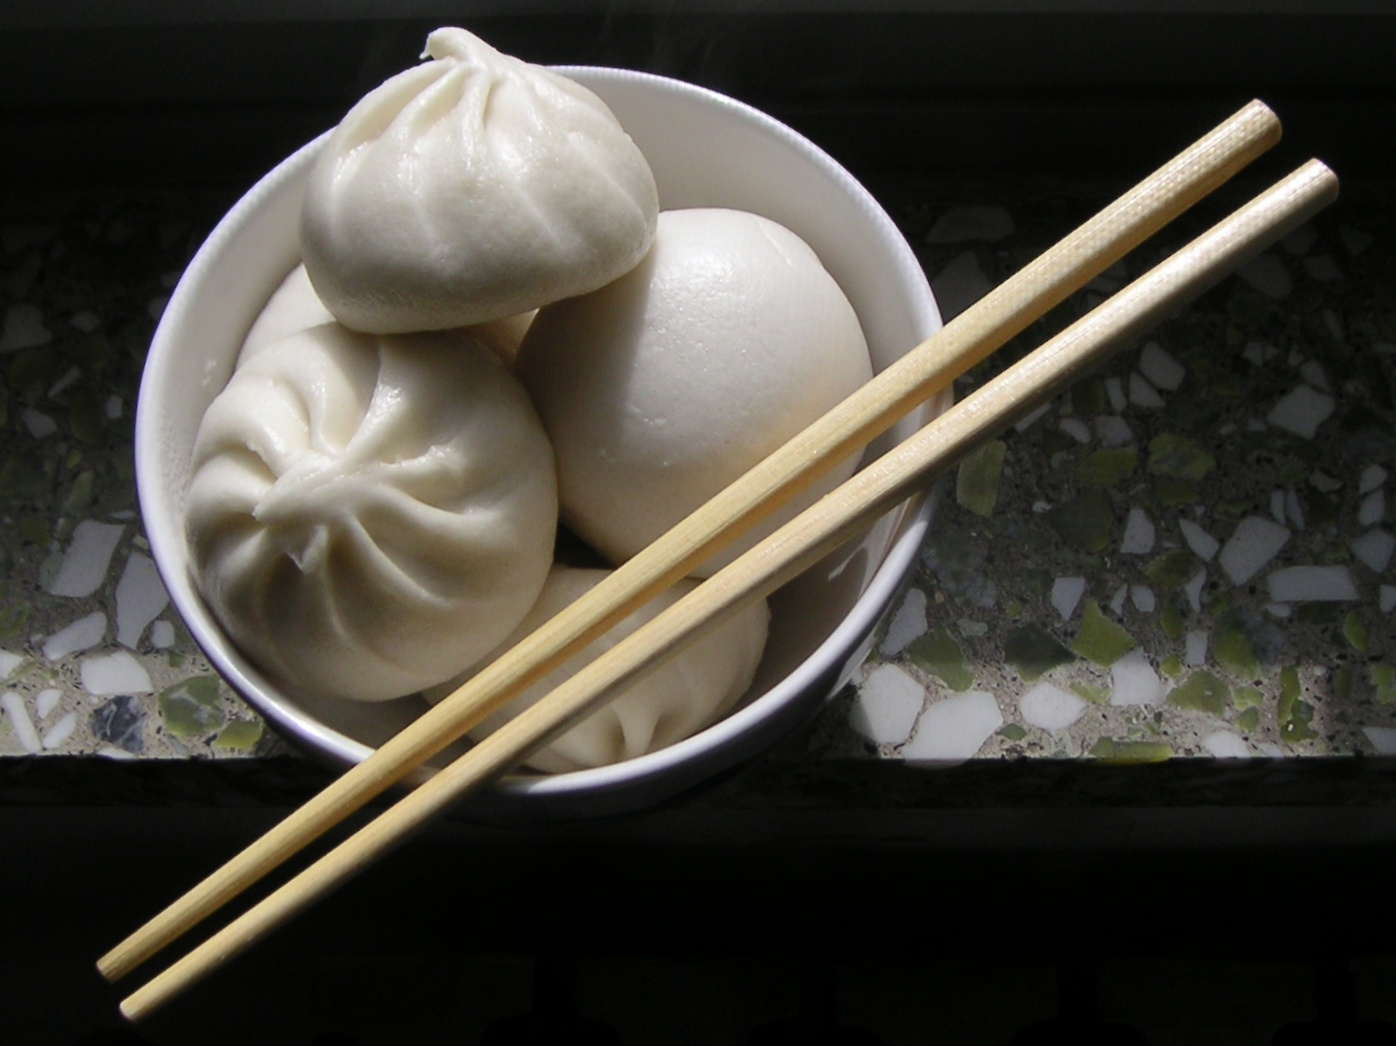 Cafe Asia - Find out how we developed our delicious new steamed buns